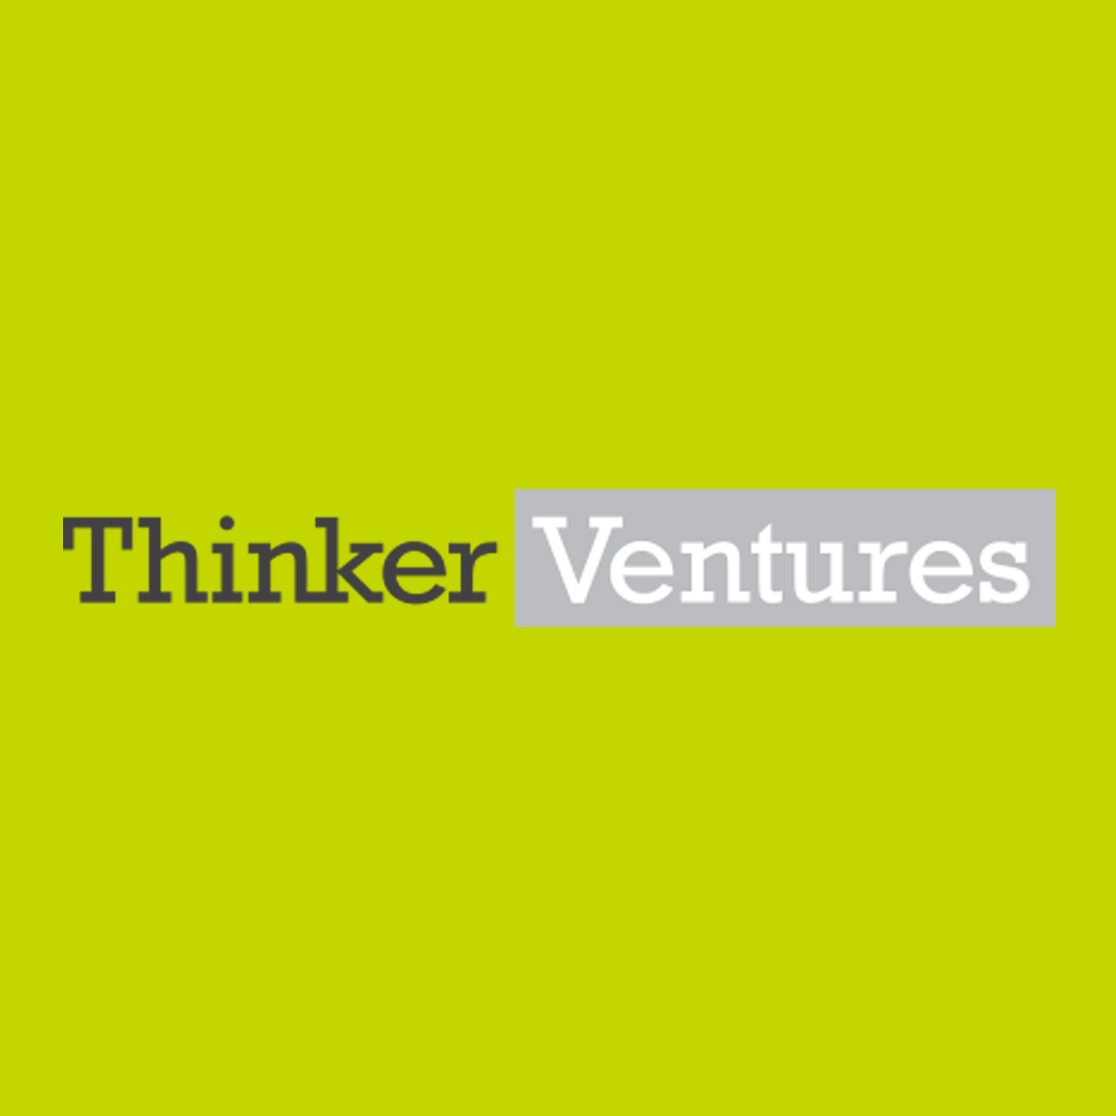 Featured on Thinker Ventures Blog - October 2016